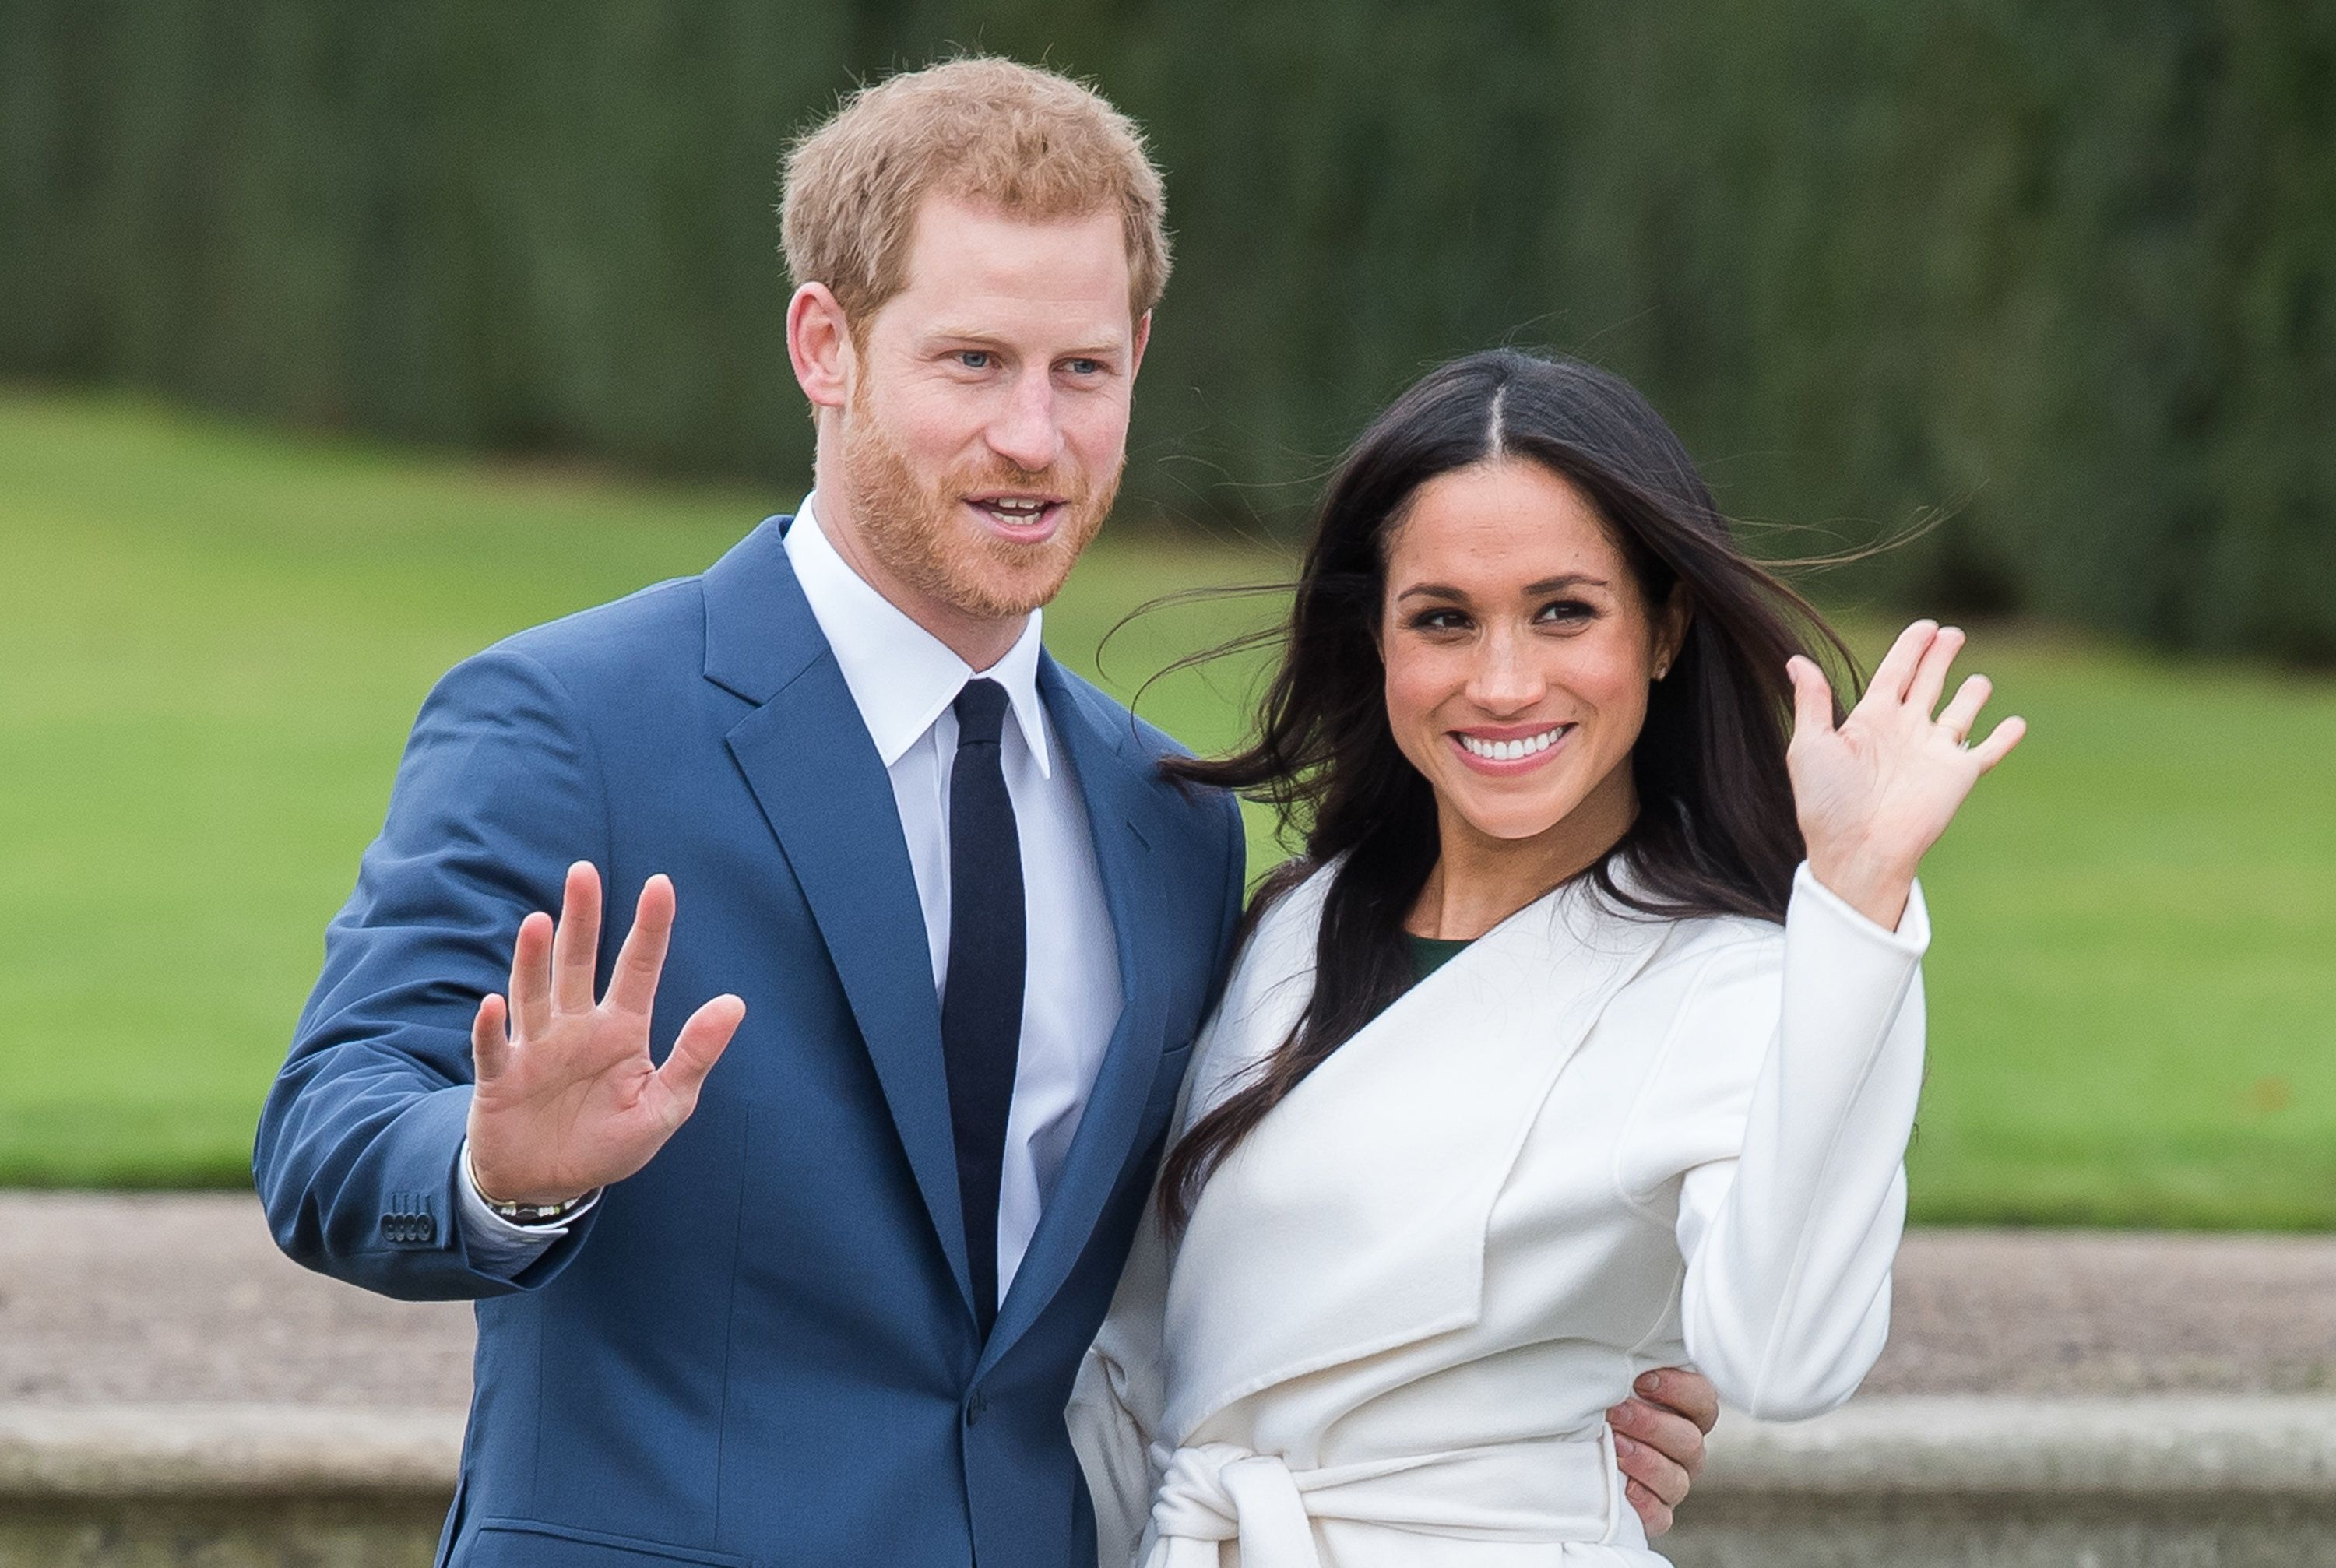 Prince Harry and Meghan Markle's wedding could result in a big payday for some